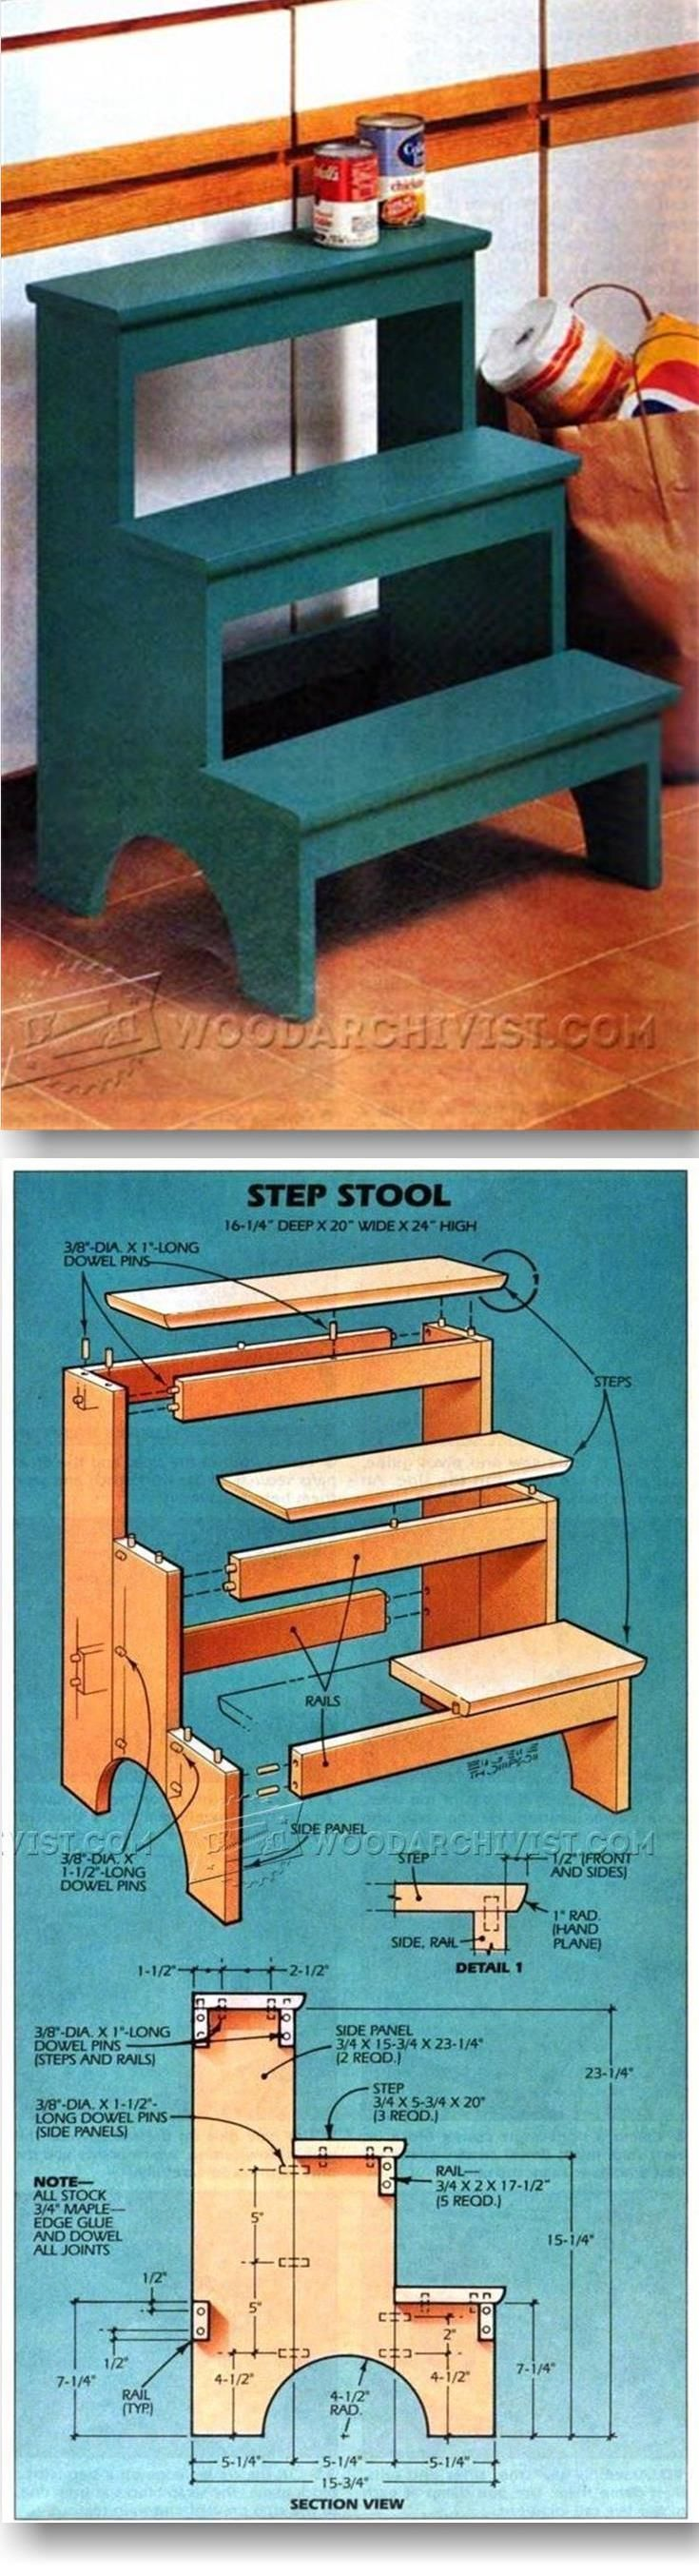 Decorative Step Stools Kitchen 20 Best Ideas About Kitchen Step Stool On Pinterest 4 Step